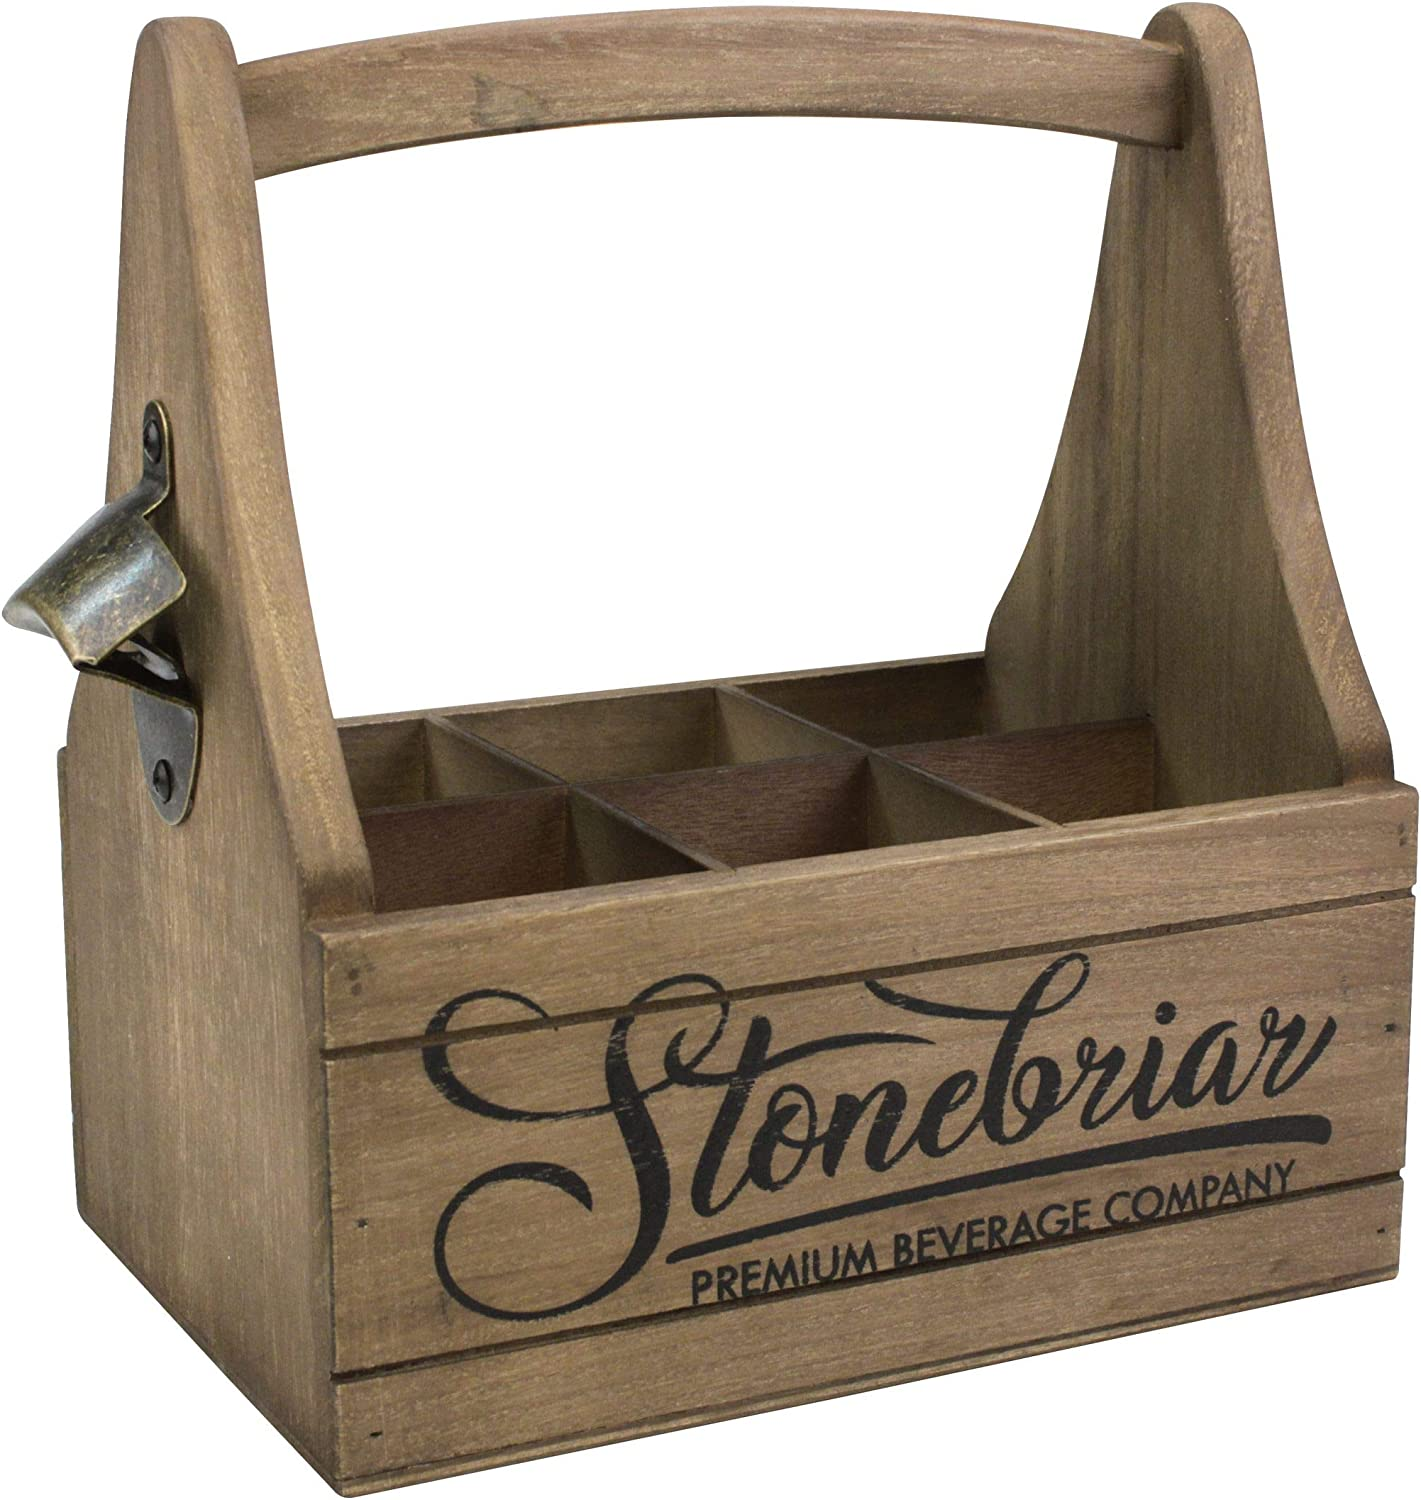 Stonebriar Premium Beverage Albuquerque Mall Wooden Beer Caddy and Me with Handle Fashion